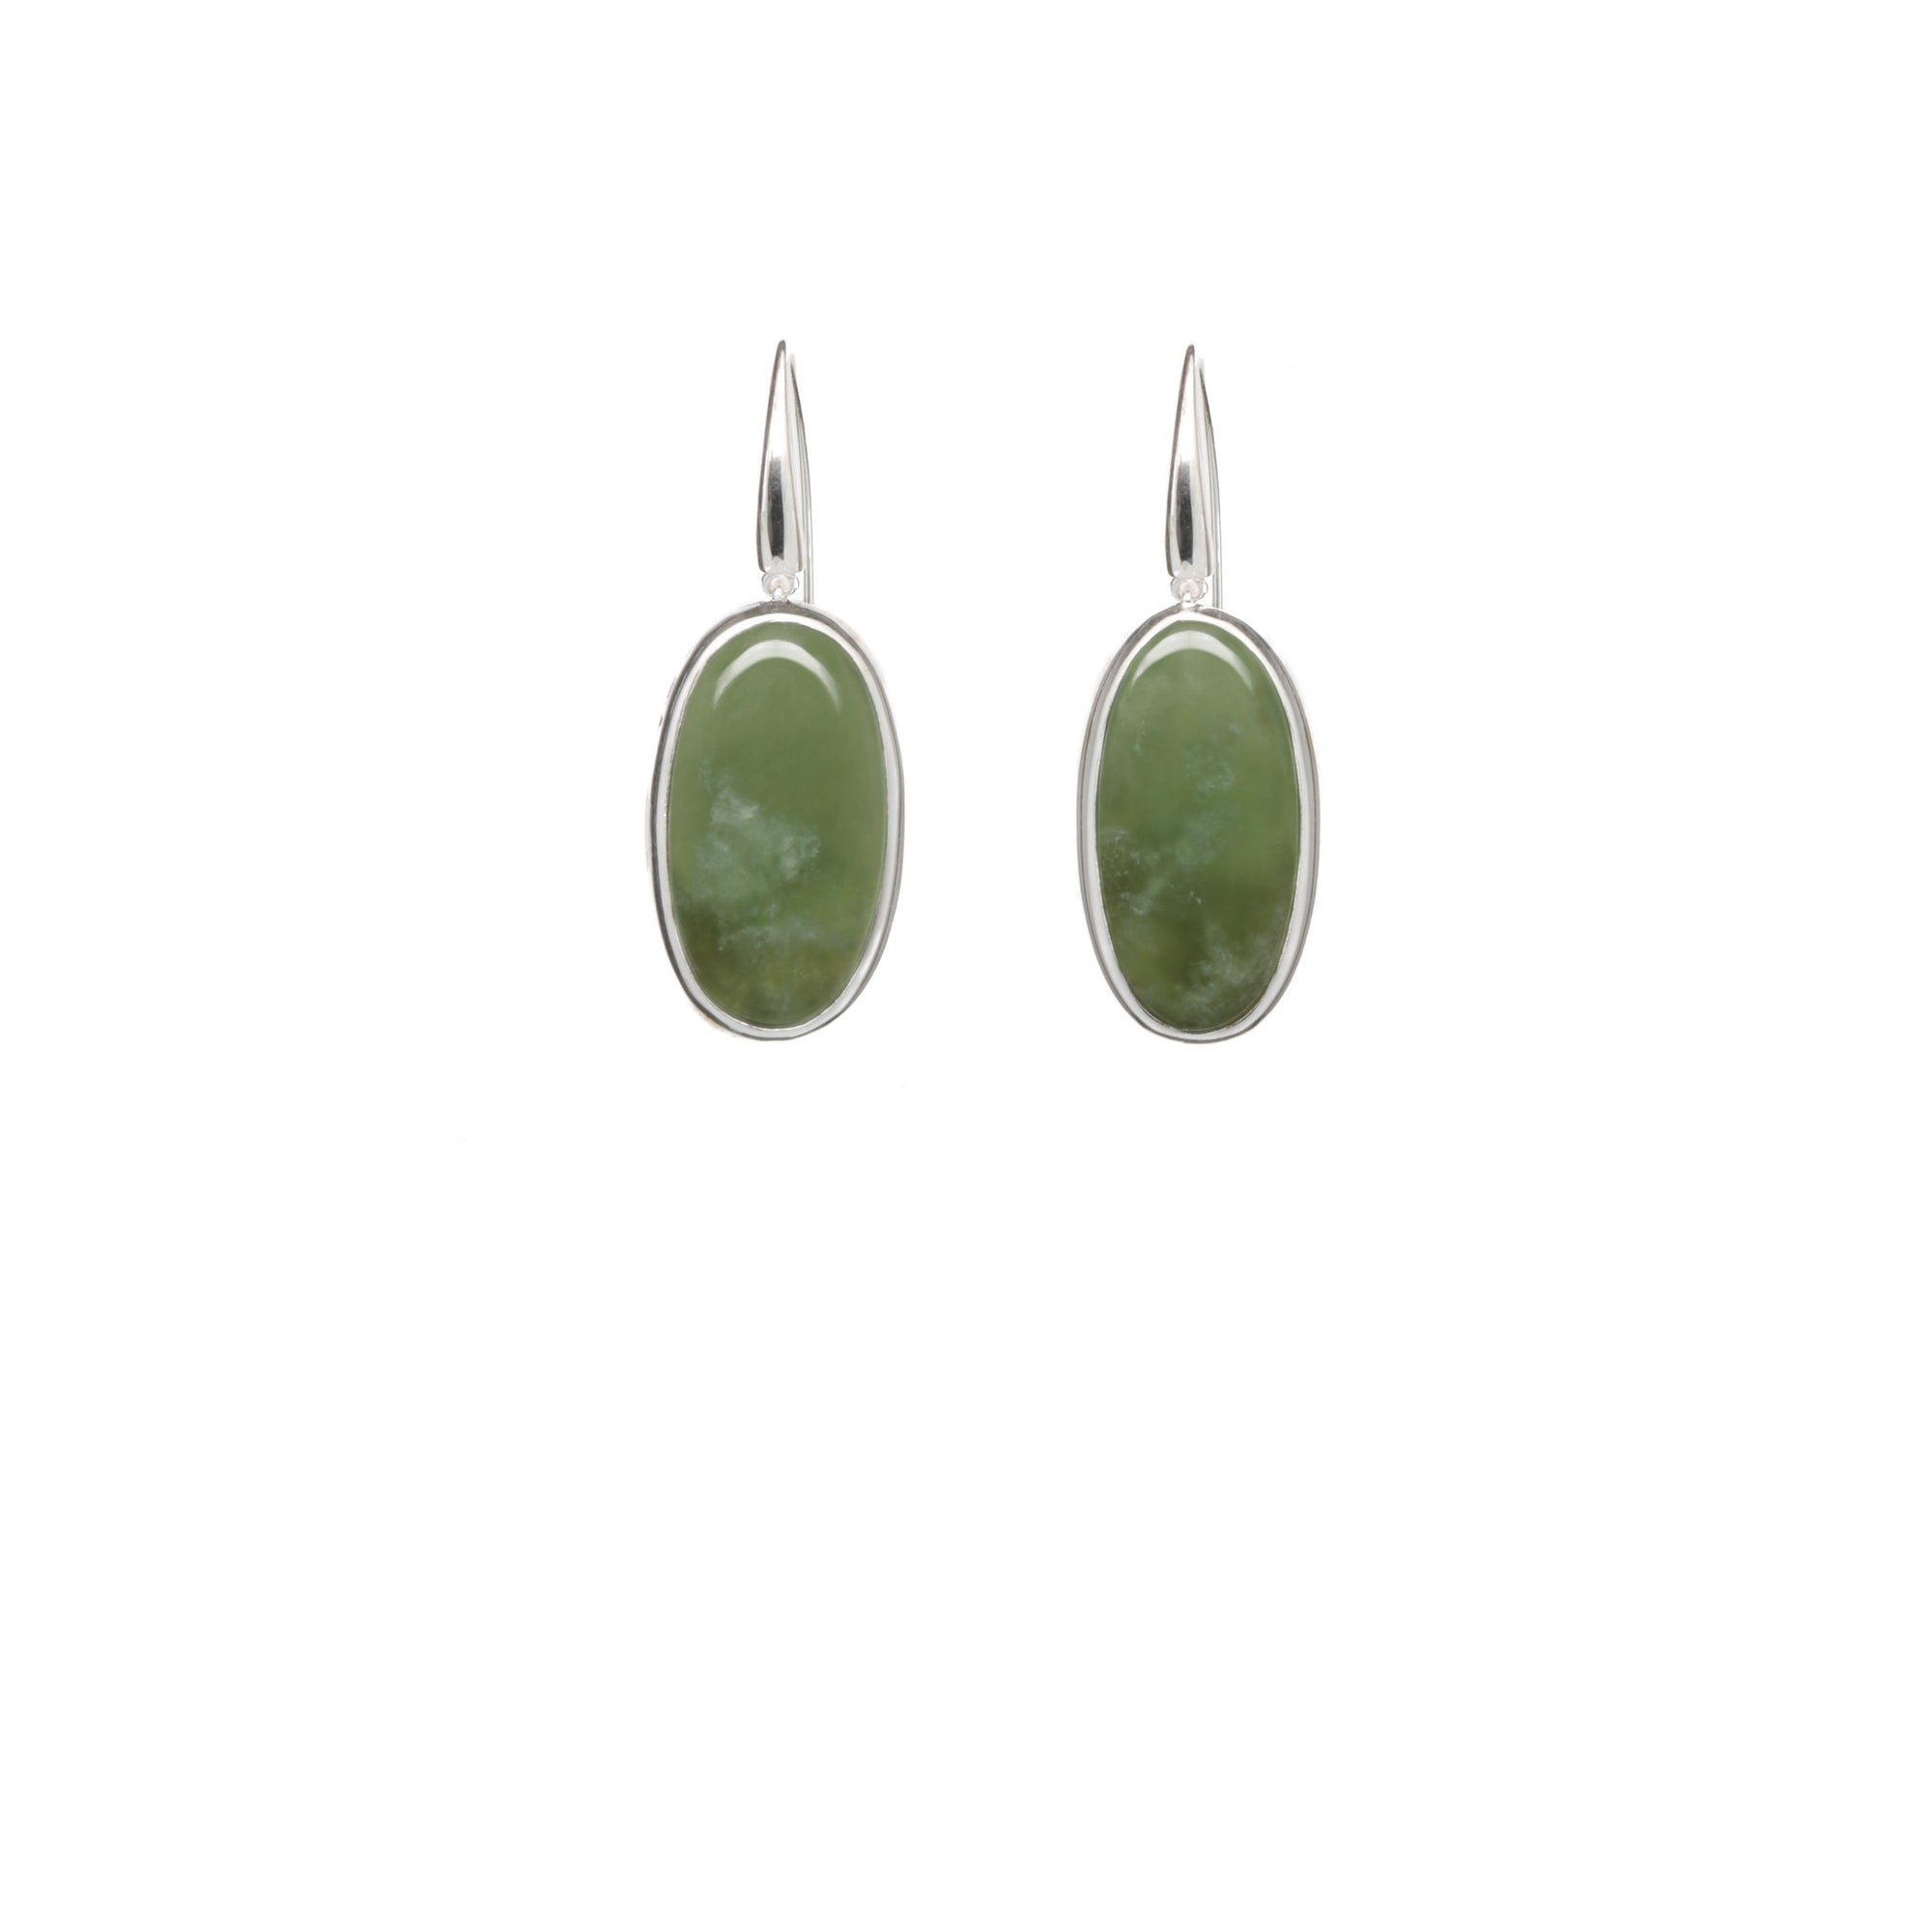 New Zealand Jade Long Oval Sterling Silver Earrings